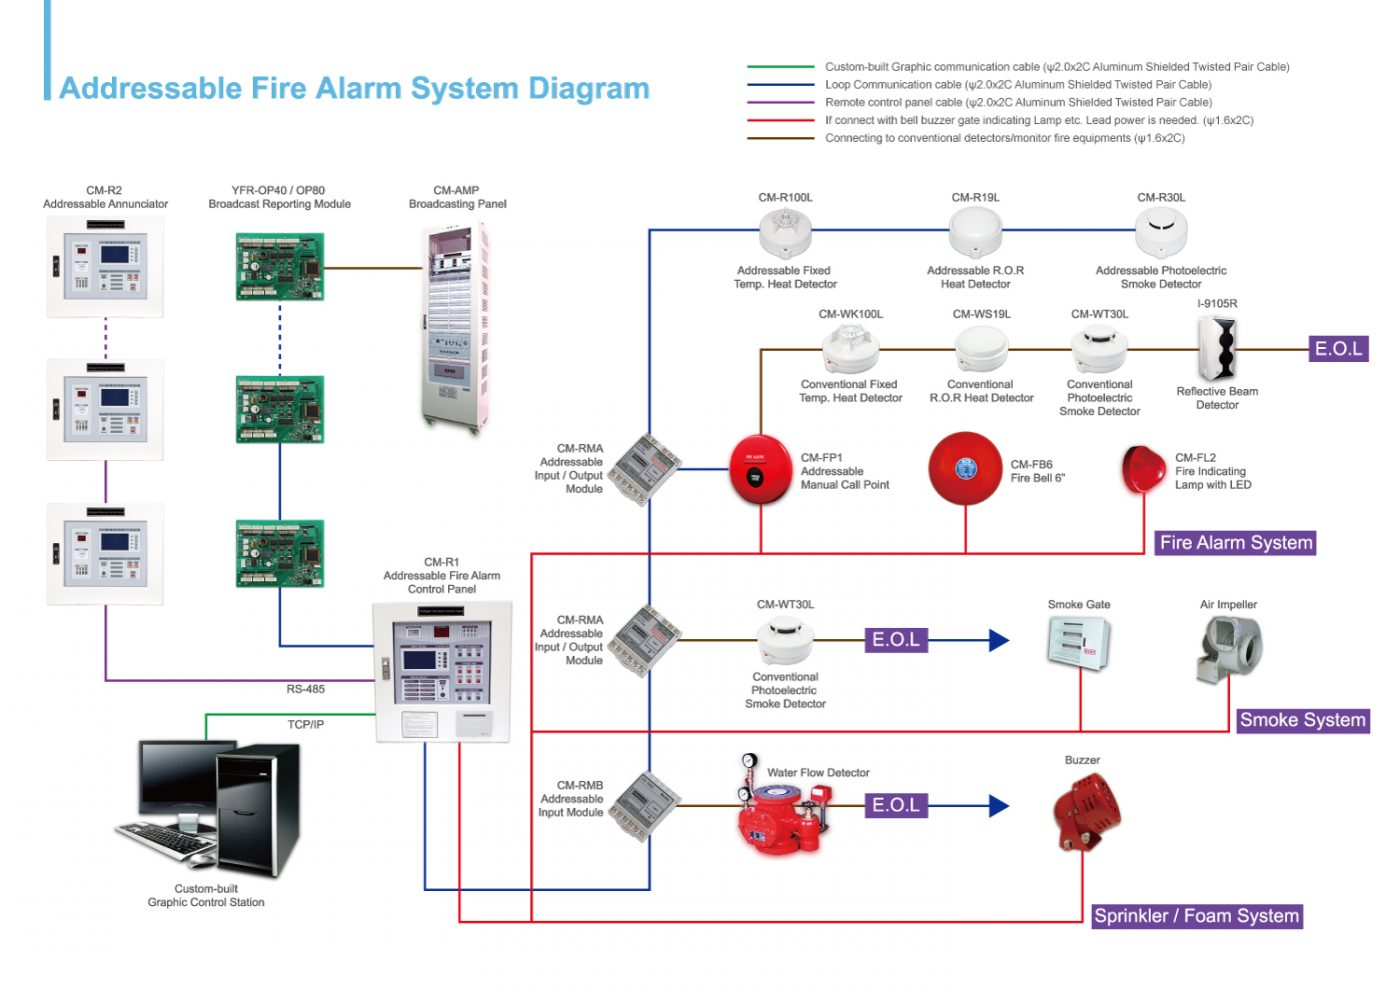 Simplex Fire Alarm System Owner Wiring Diagram Diagram Base Website Wiring Diagram Bruce Kumar Frantzis Umlcommunicationdiagram Rotecastello It